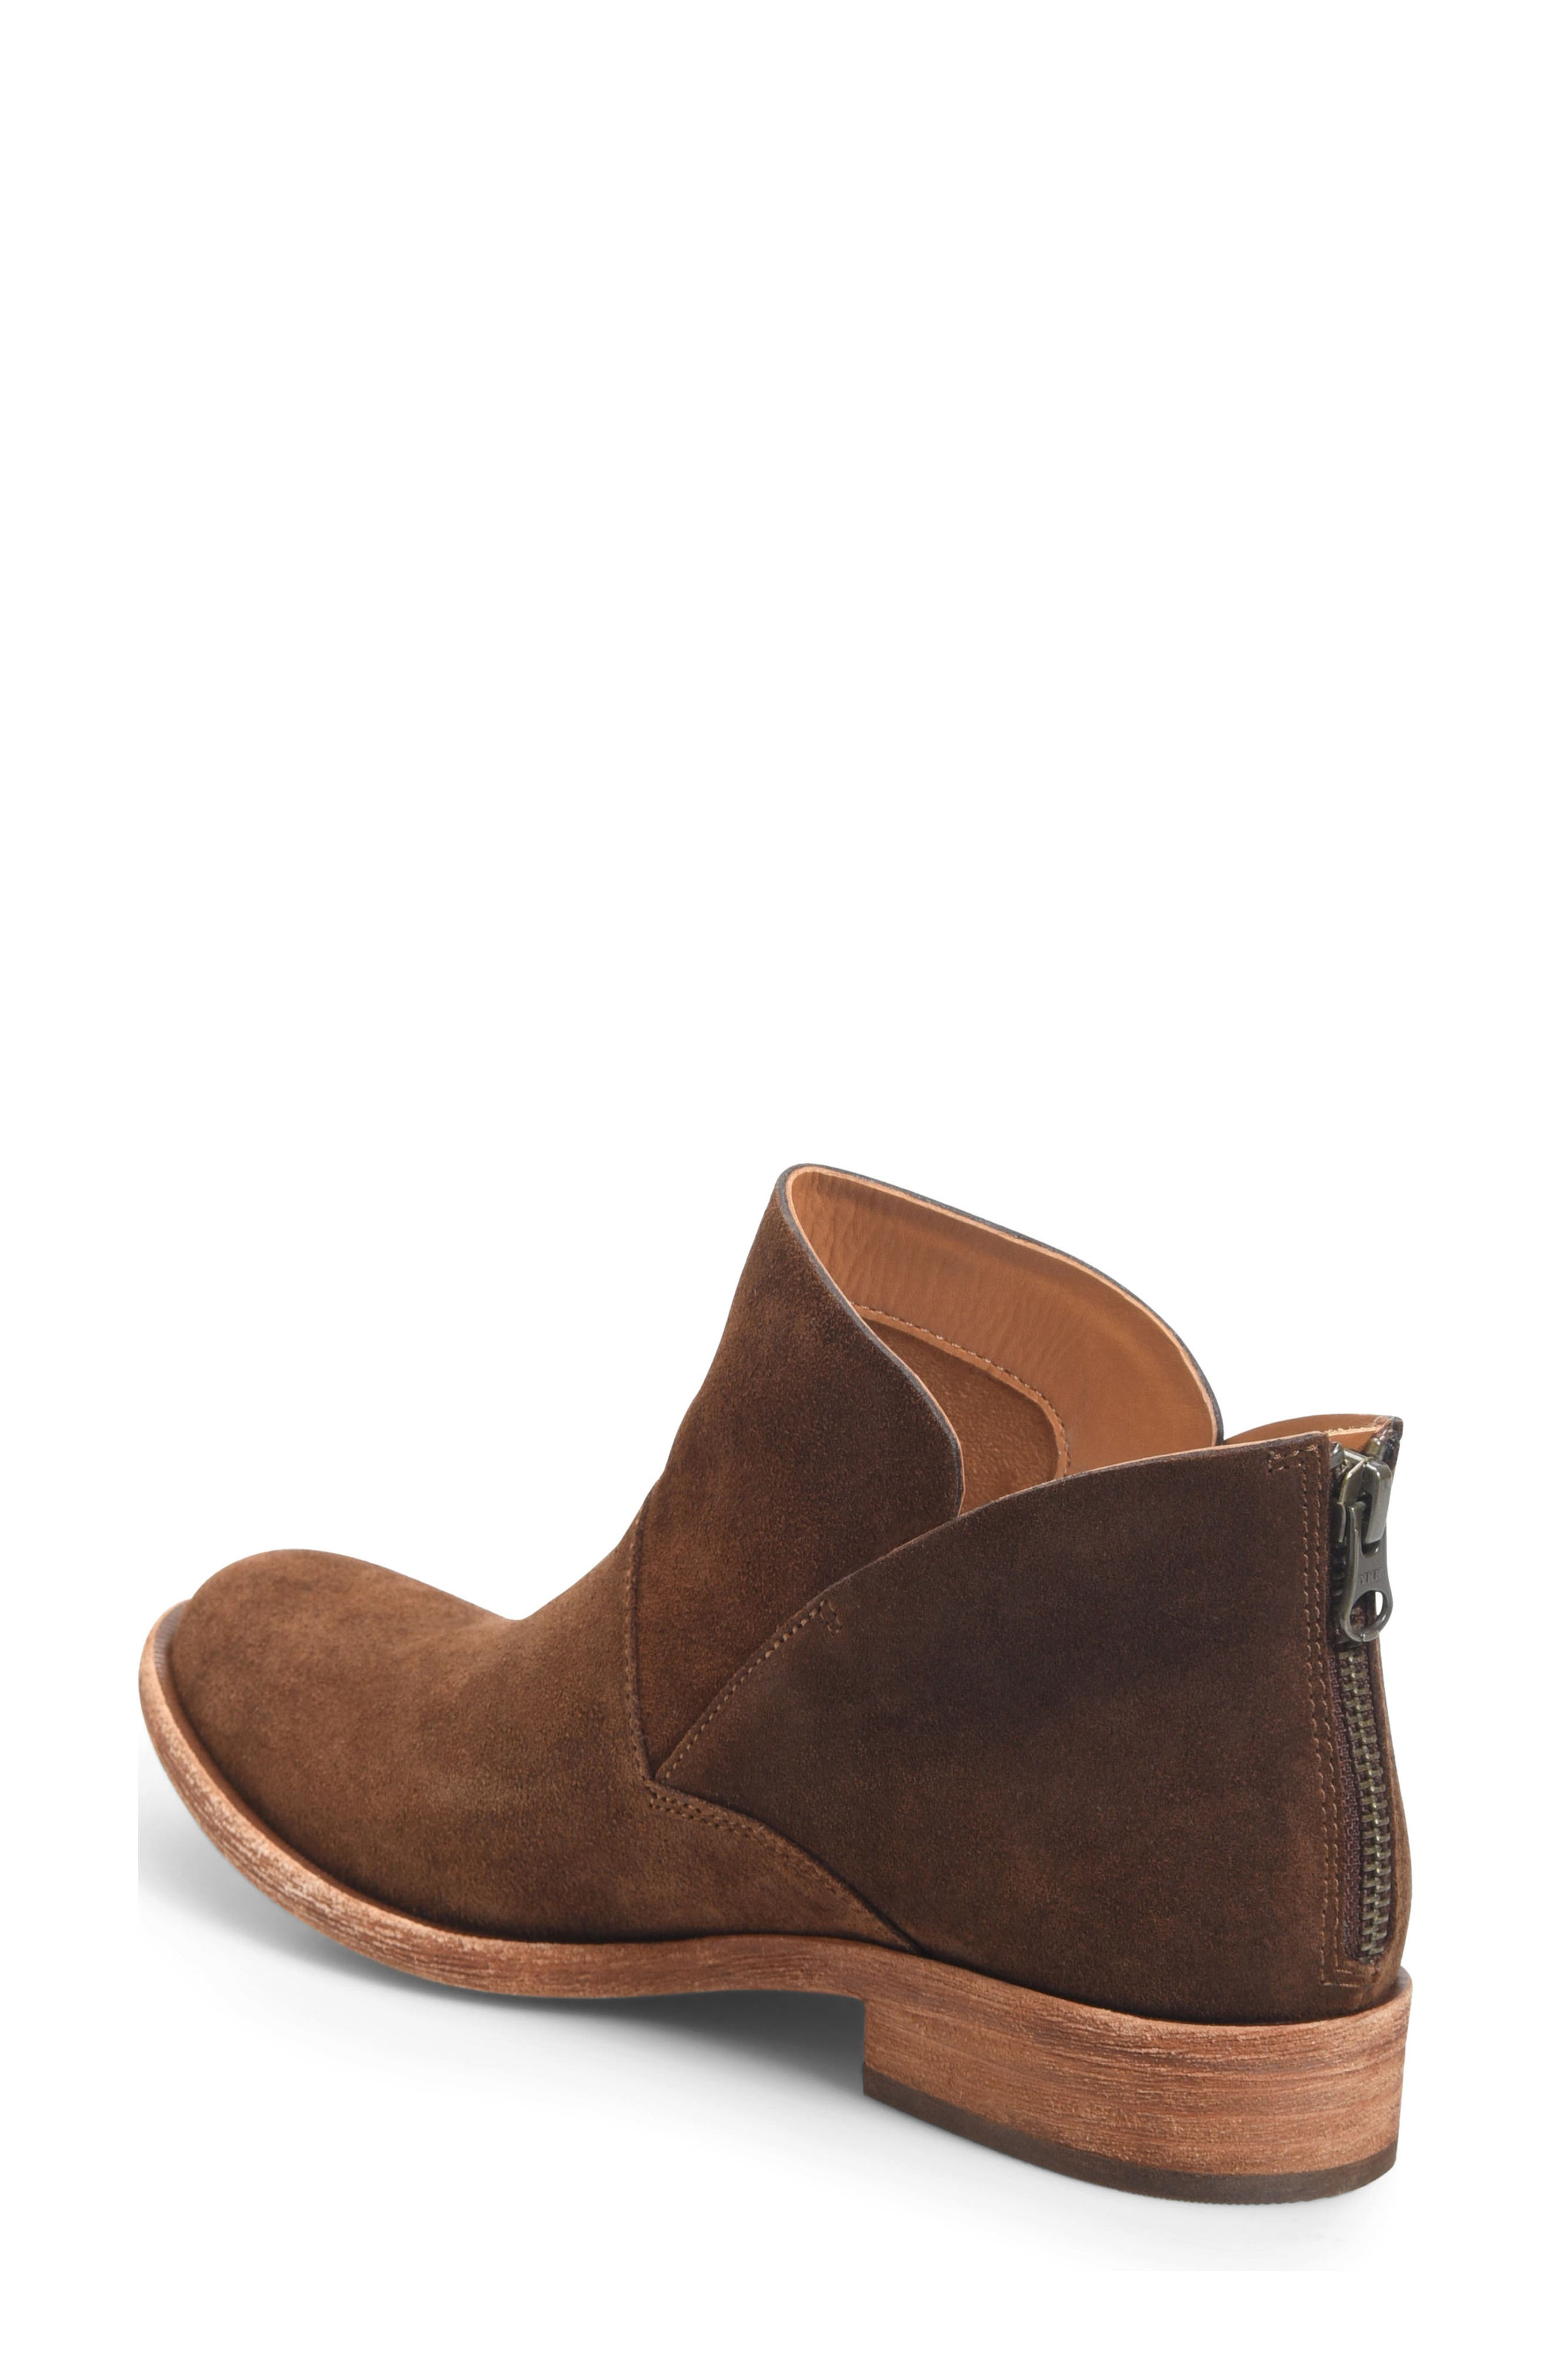 Ryder Ankle Boot,                             Alternate thumbnail 2, color,                             Rust Suede